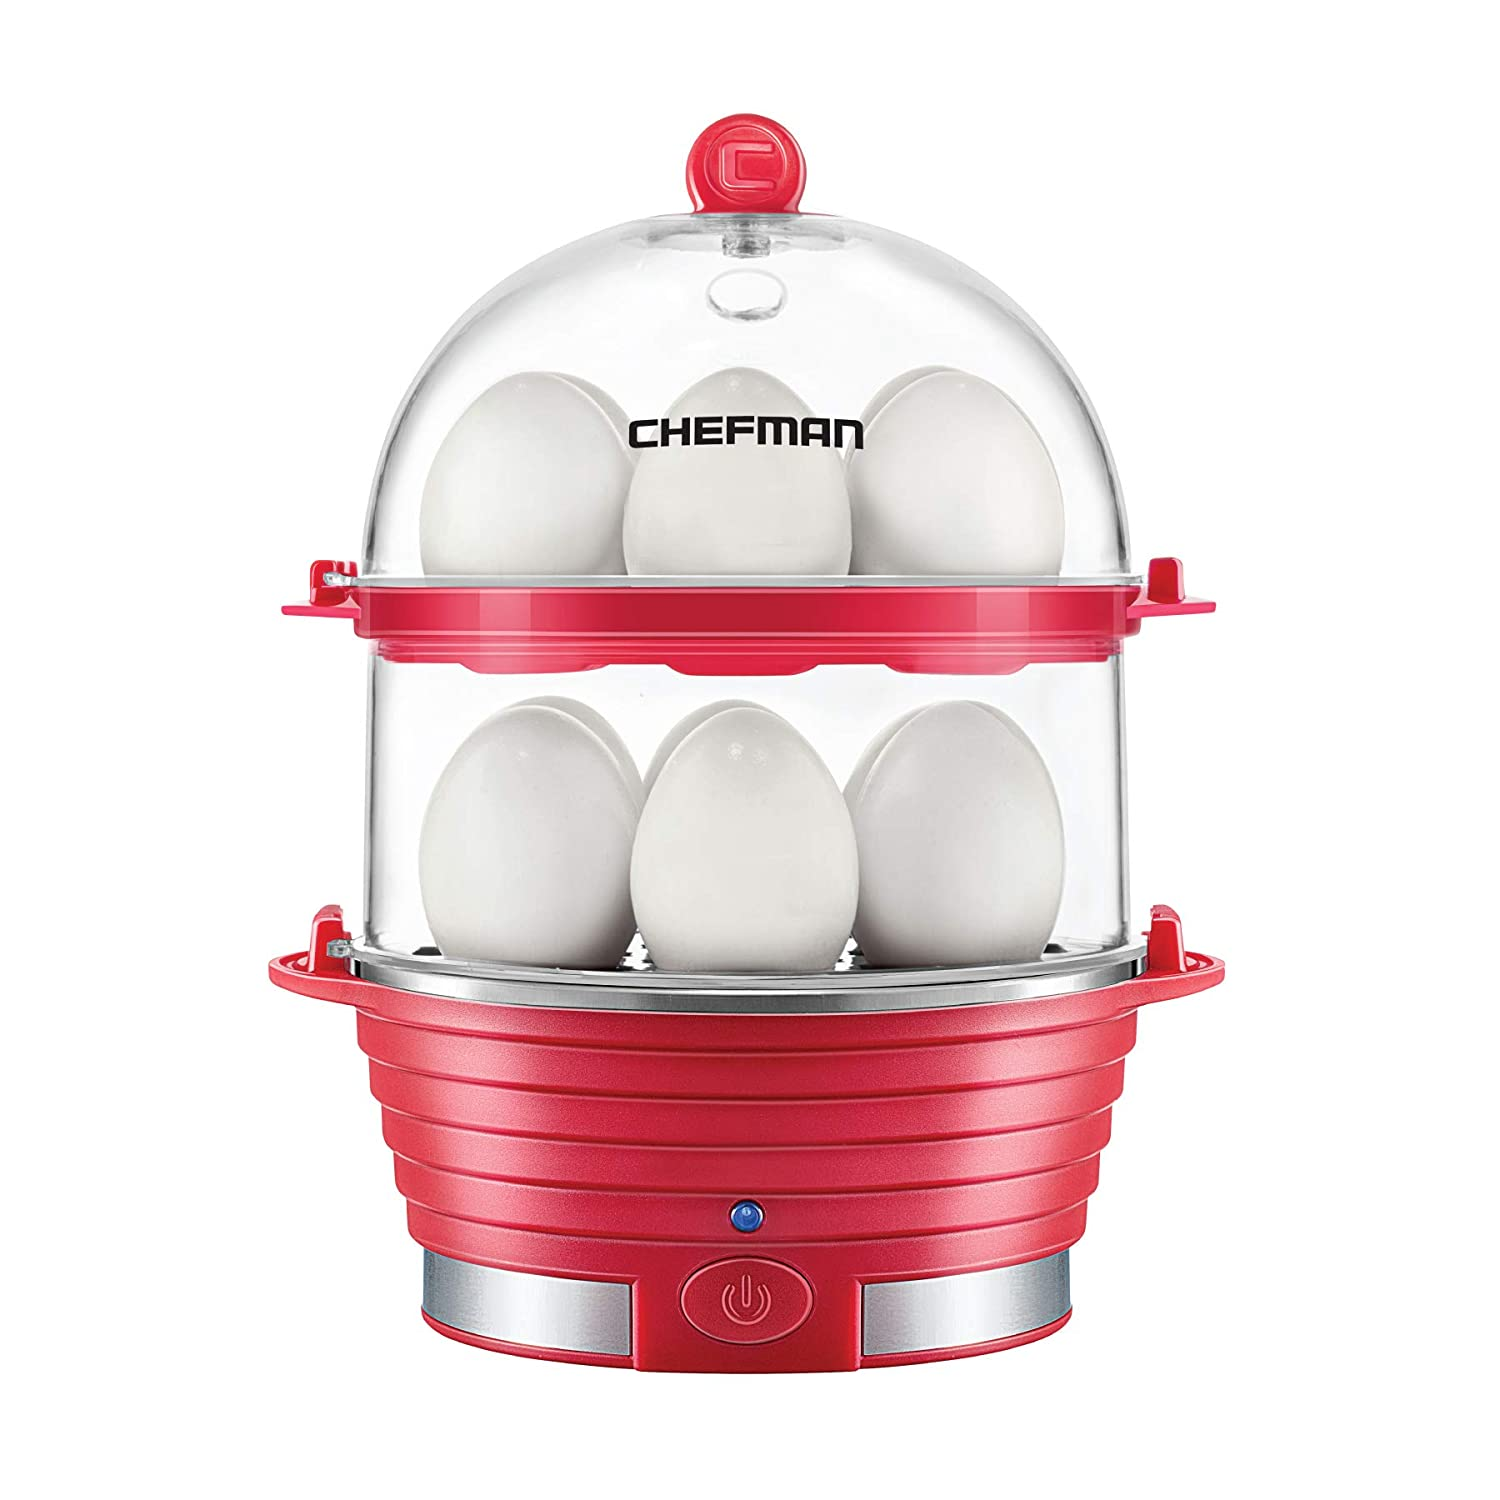 Chefman Electric Egg Cooker Boiler, Rapid Egg-Maker & Poacher, Food & Vegetable Steamer, Quickly Makes 12 Eggs, Hard or Soft Boiled, Poaching and Omelet Trays Included, Ready Signal, BPA-Free, Red